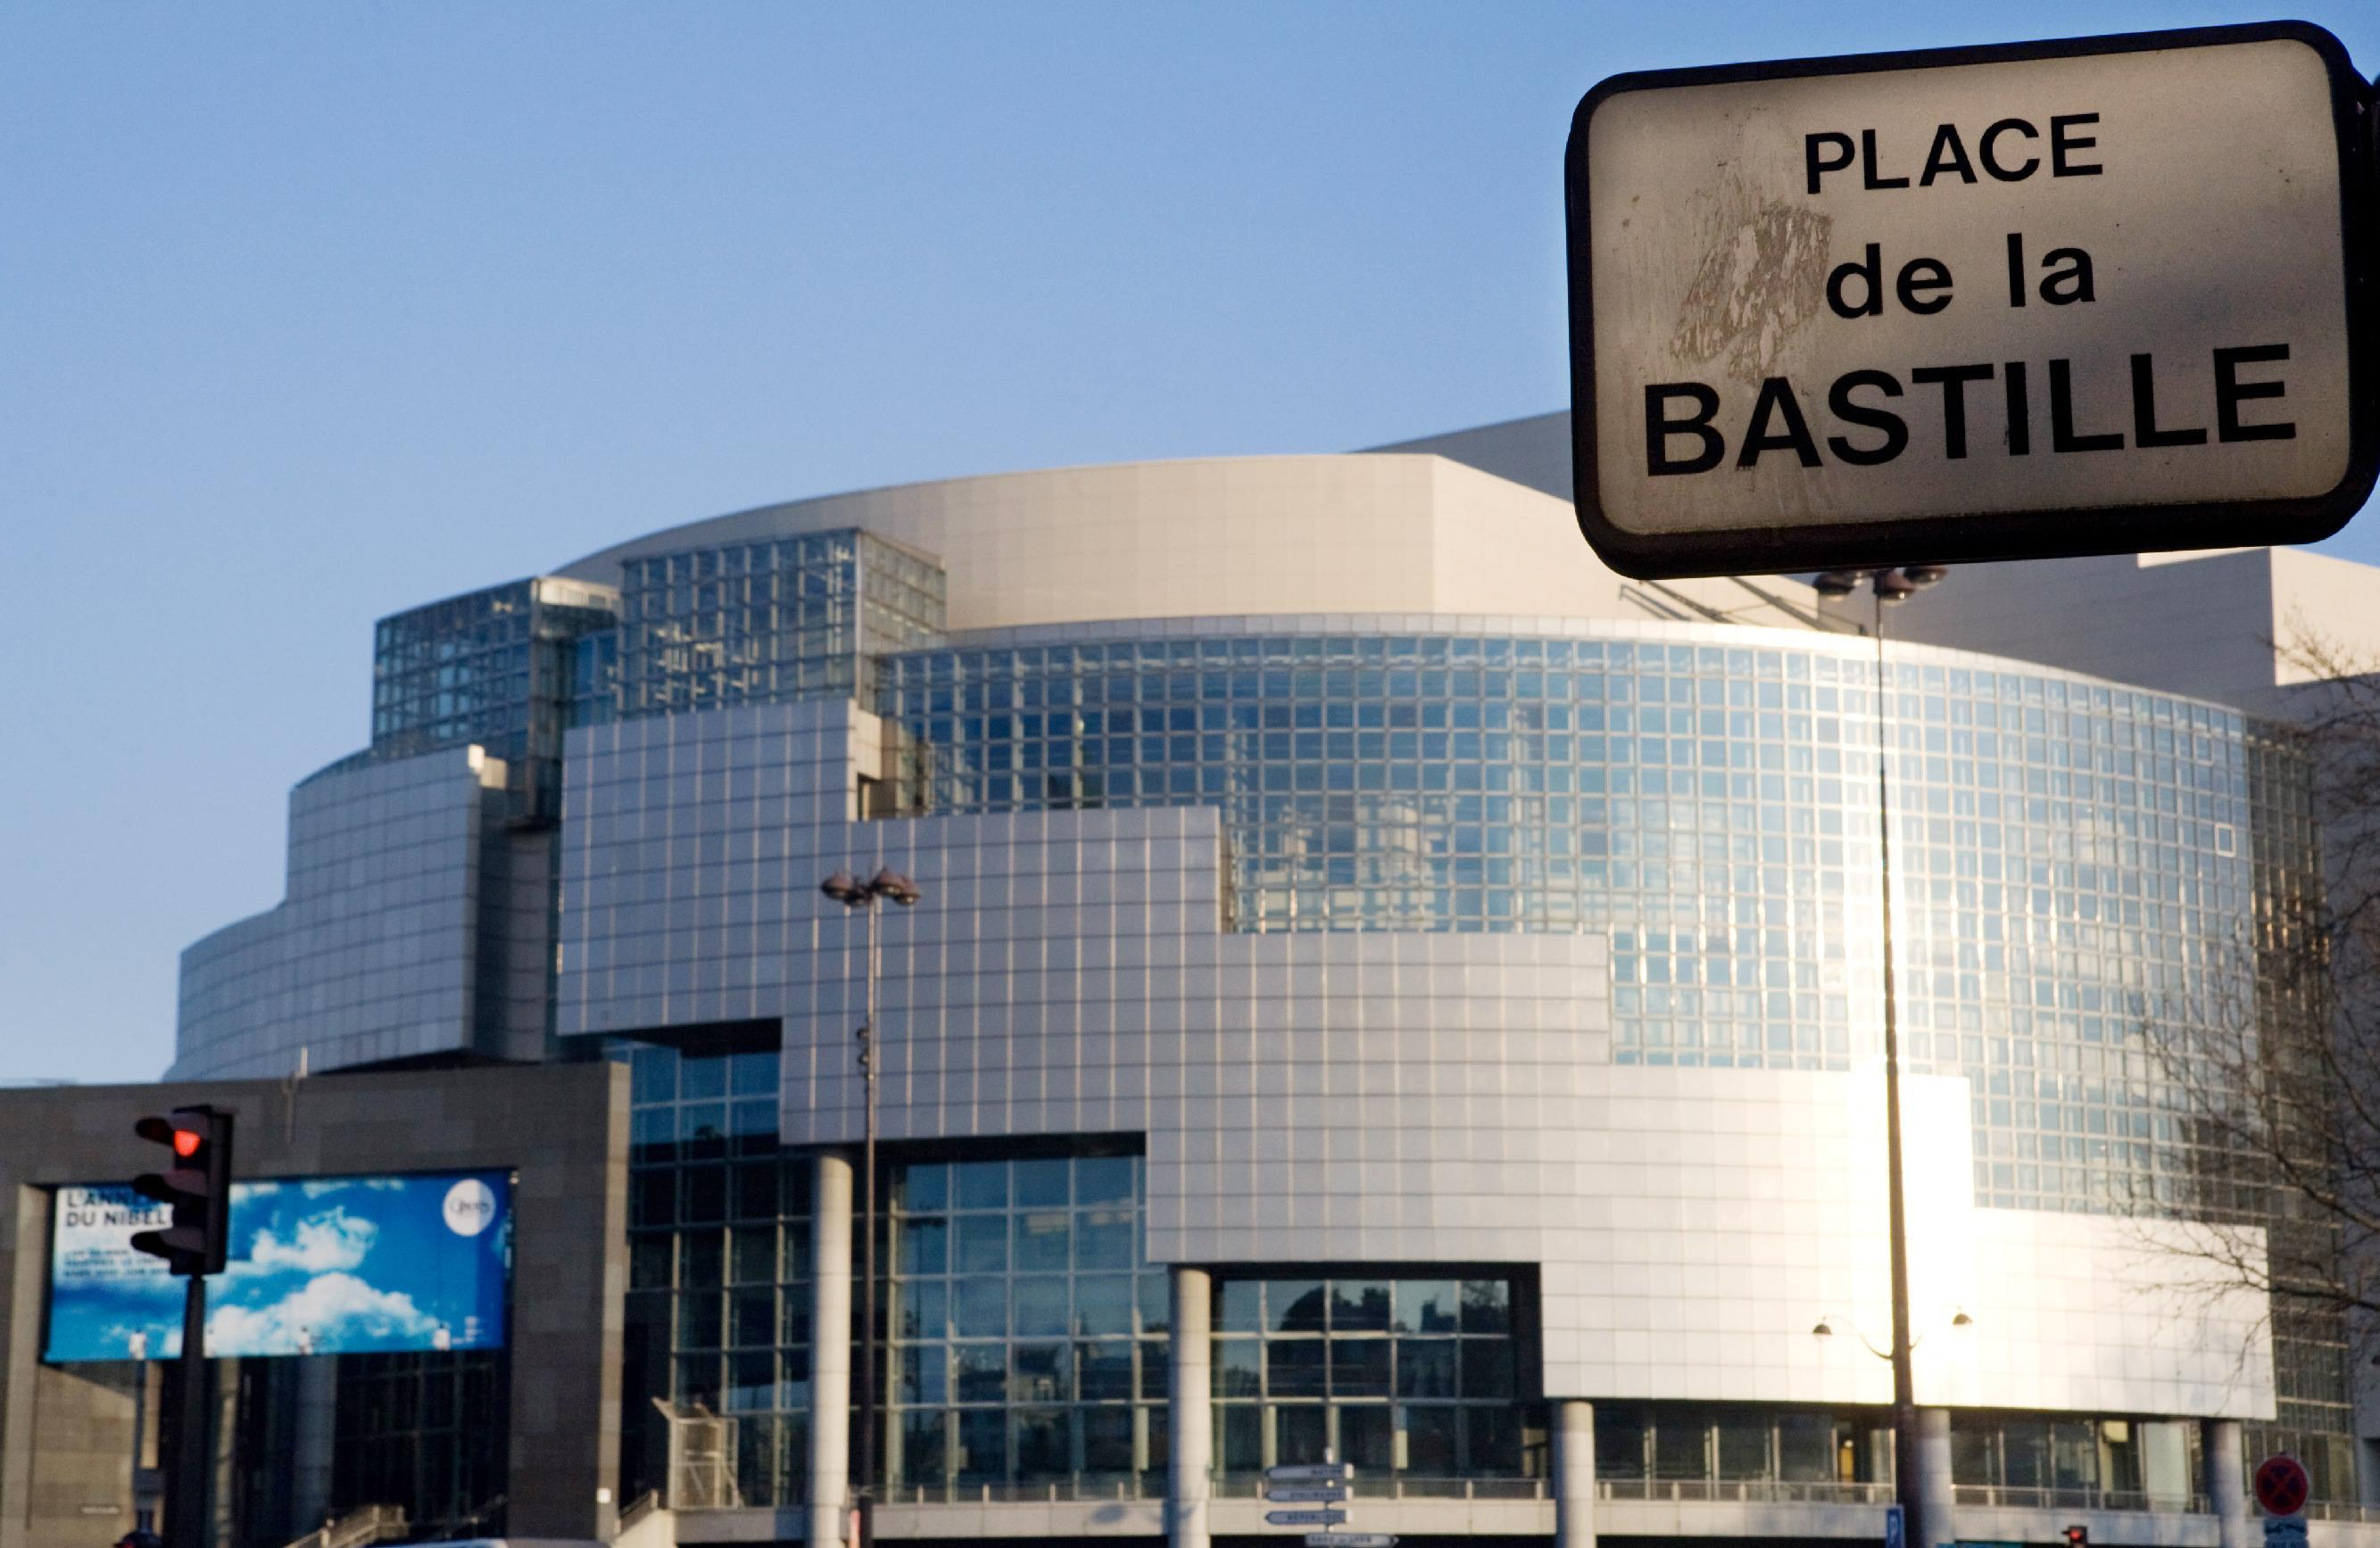 The Bastille opera house in Paris, France, on February 16, 2010